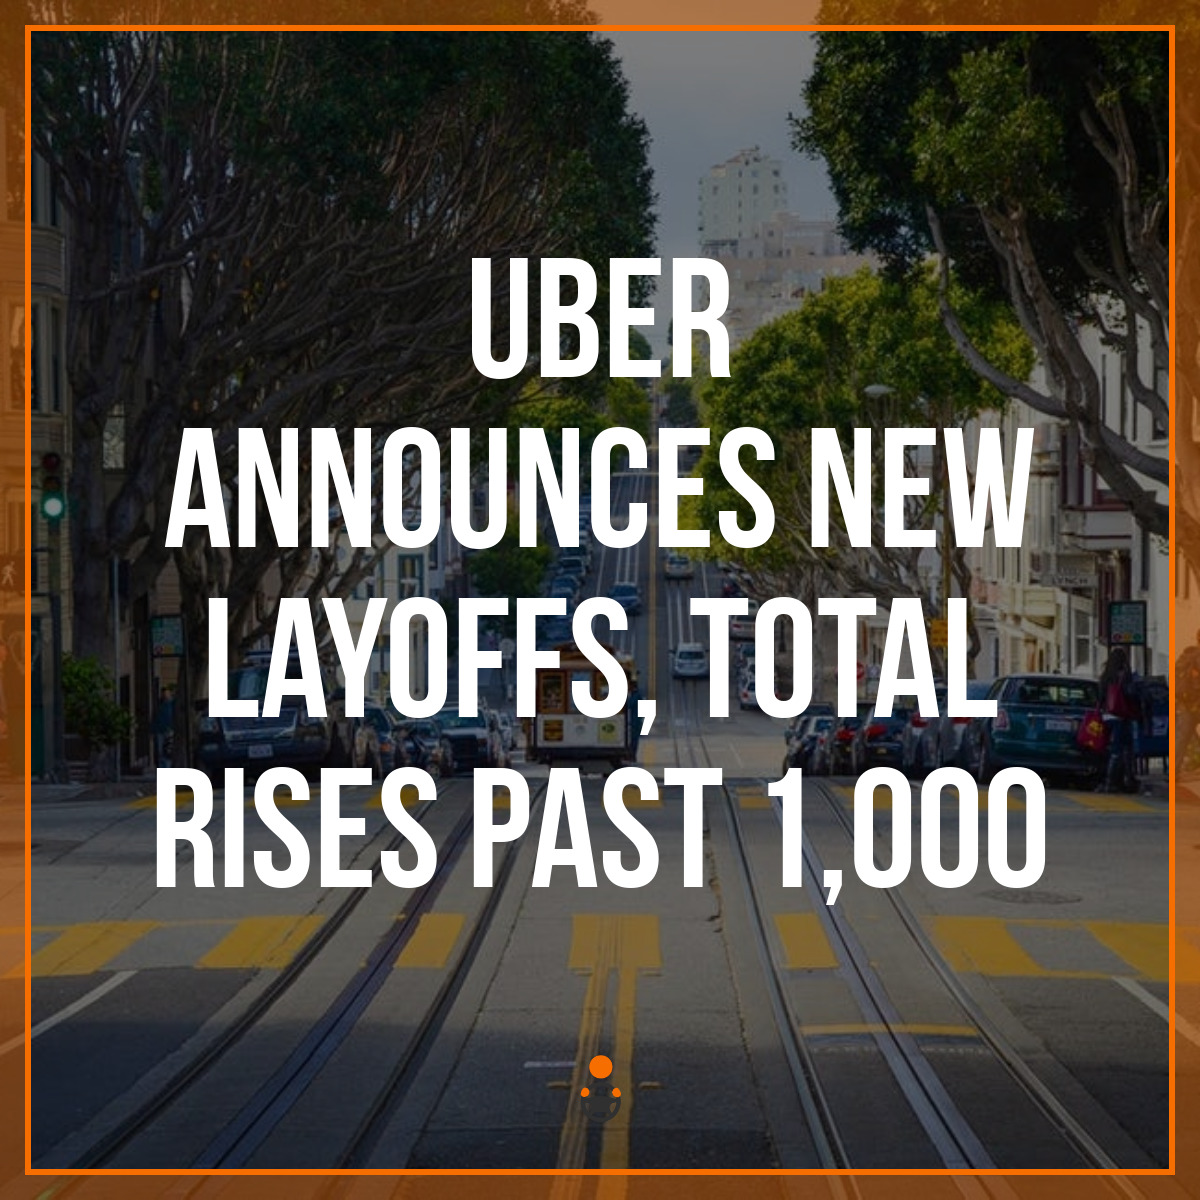 Uber Announces New Layoffs, Total Rises Past 1,000